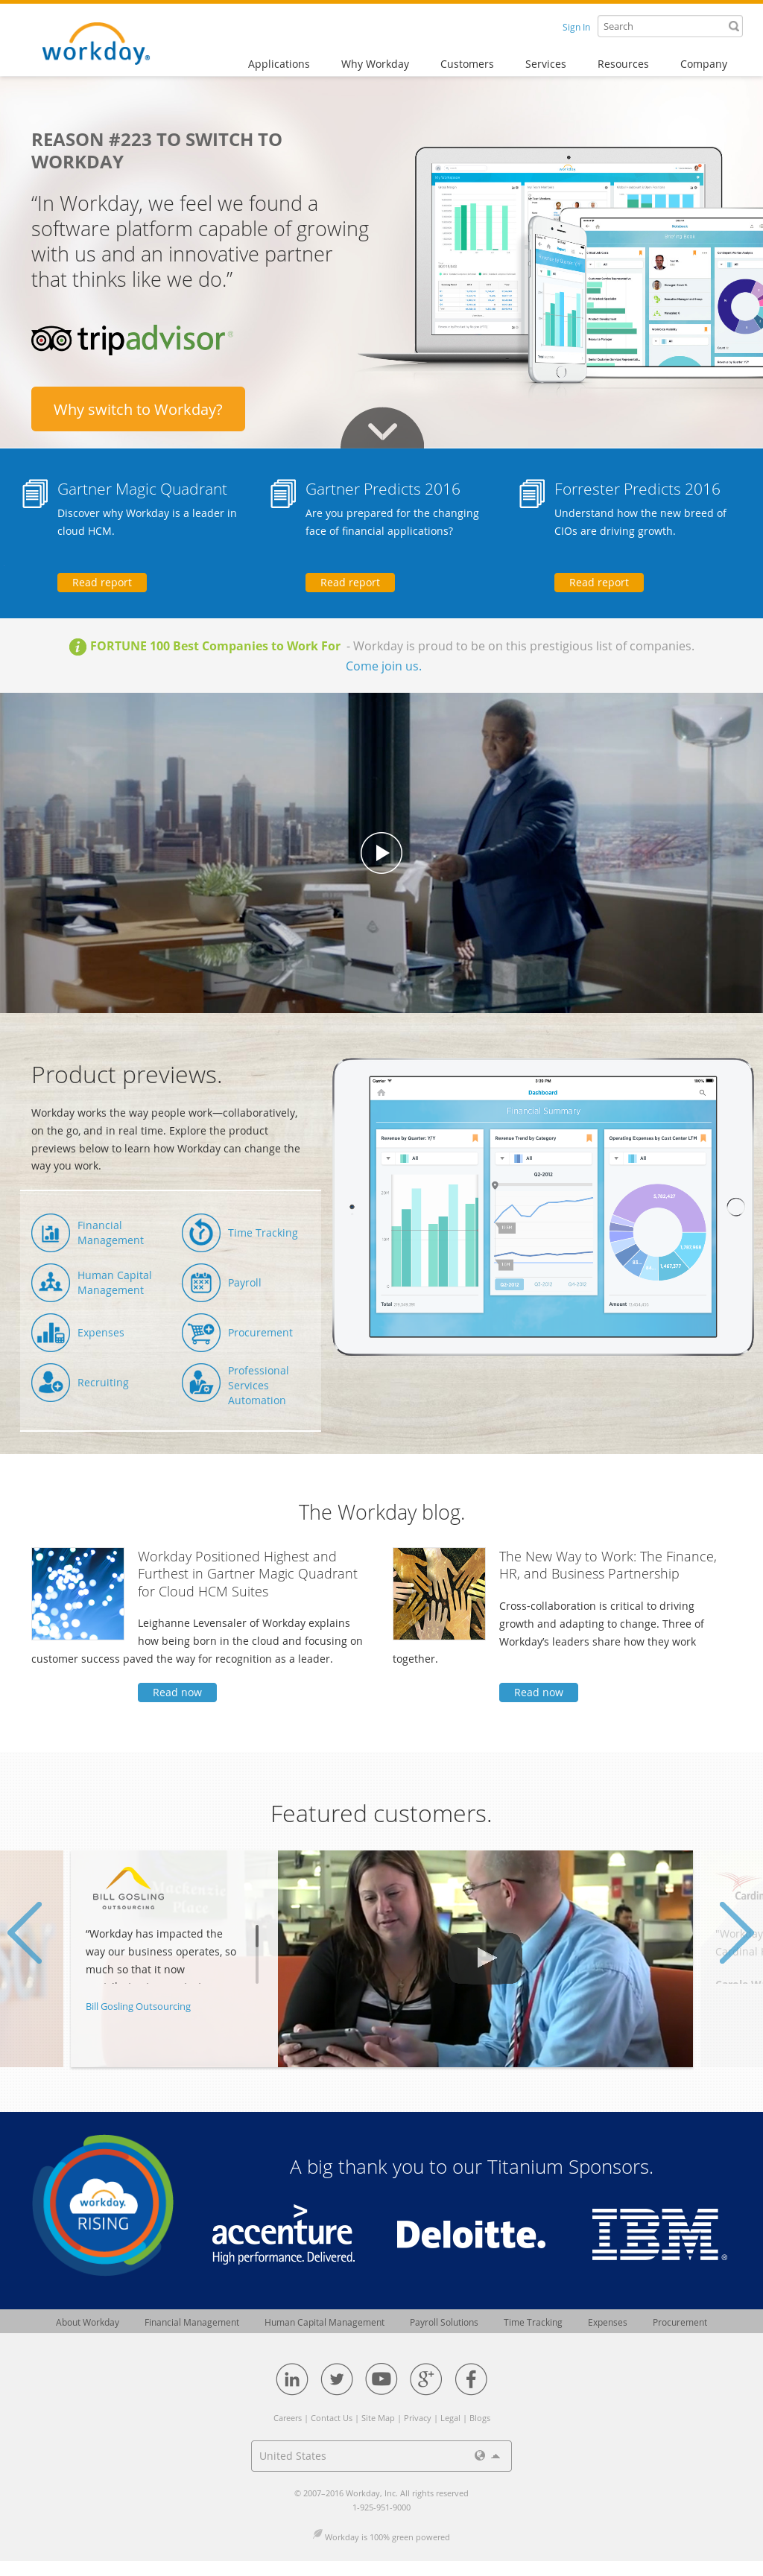 Workday Competitors, Revenue and Employees - Owler Company Profile